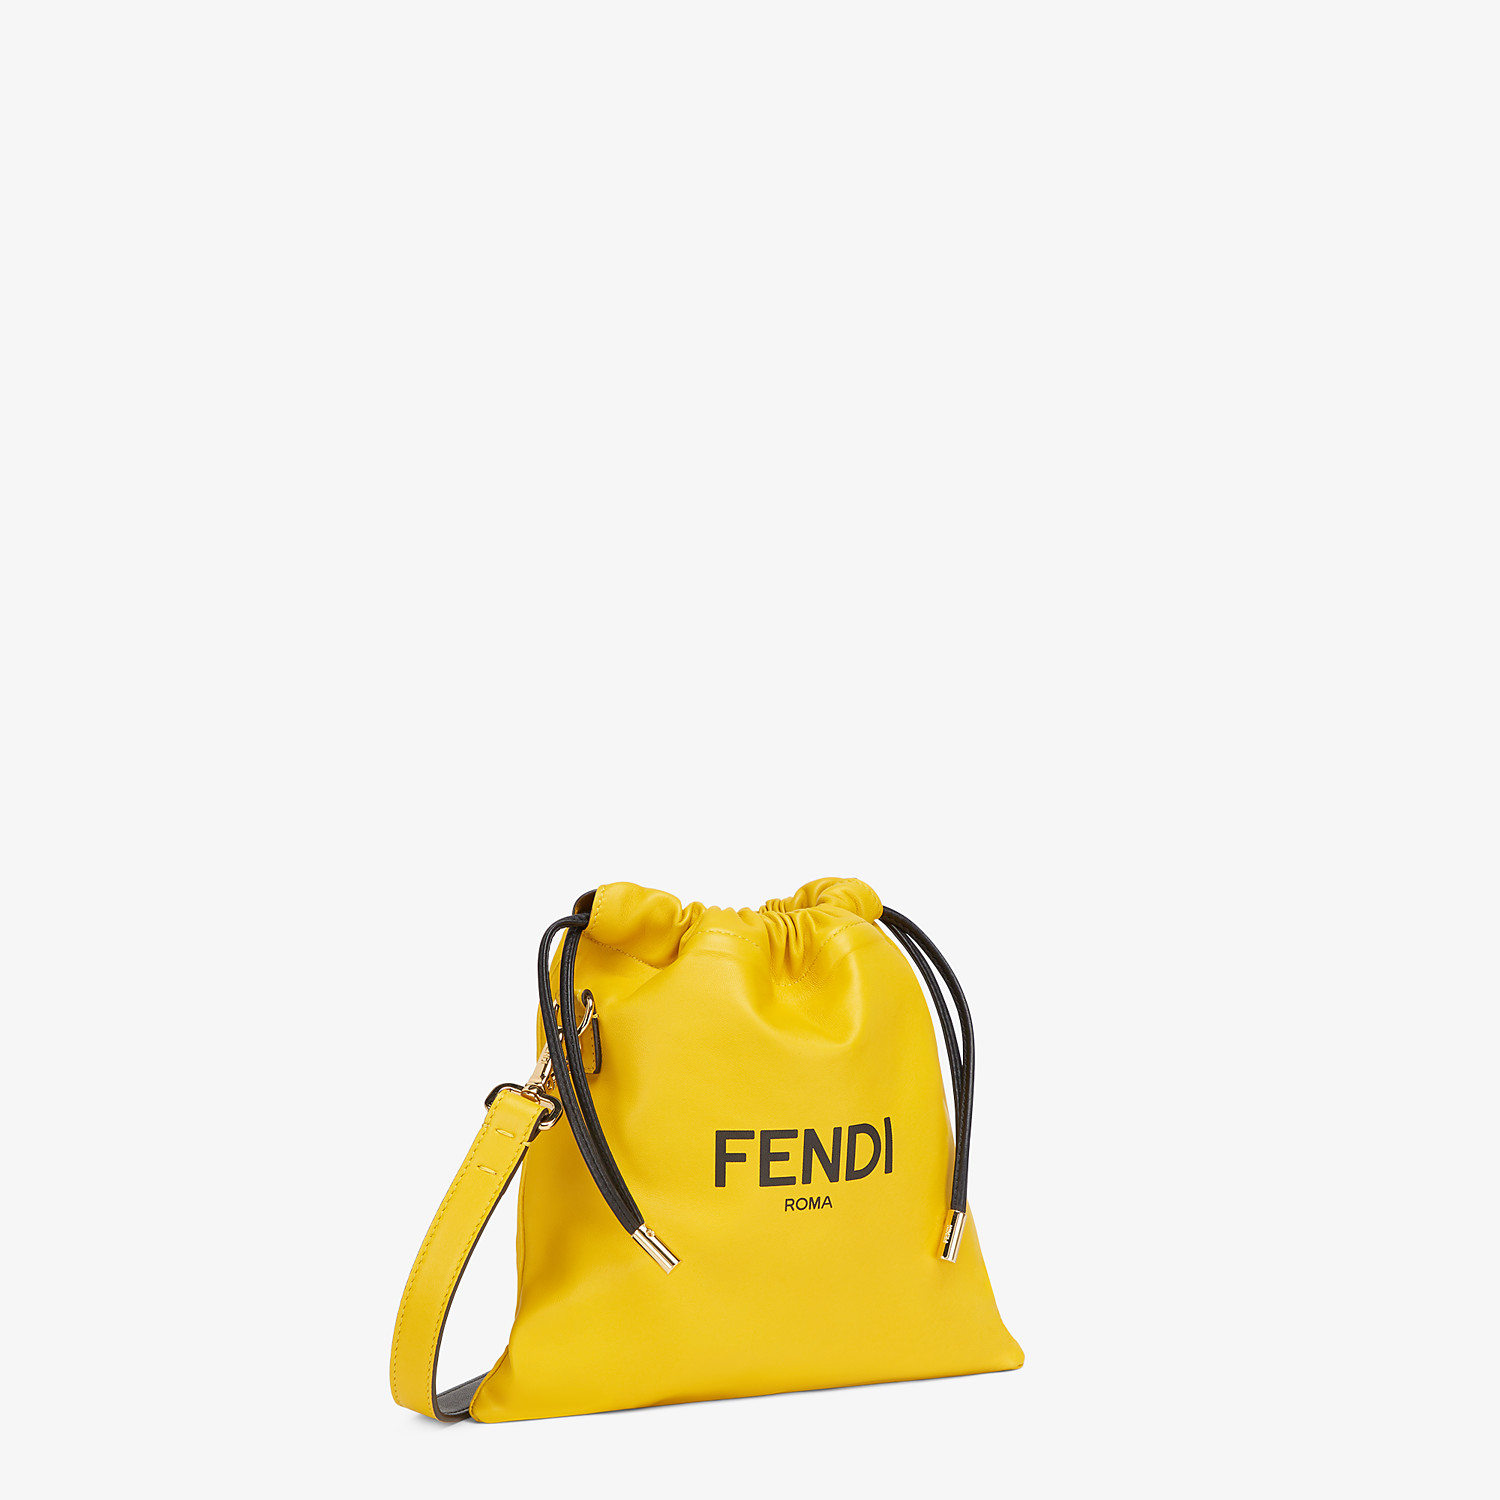 FENDI FENDI PACK SMALL POUCH - Yellow nappa leather bag - view 2 detail